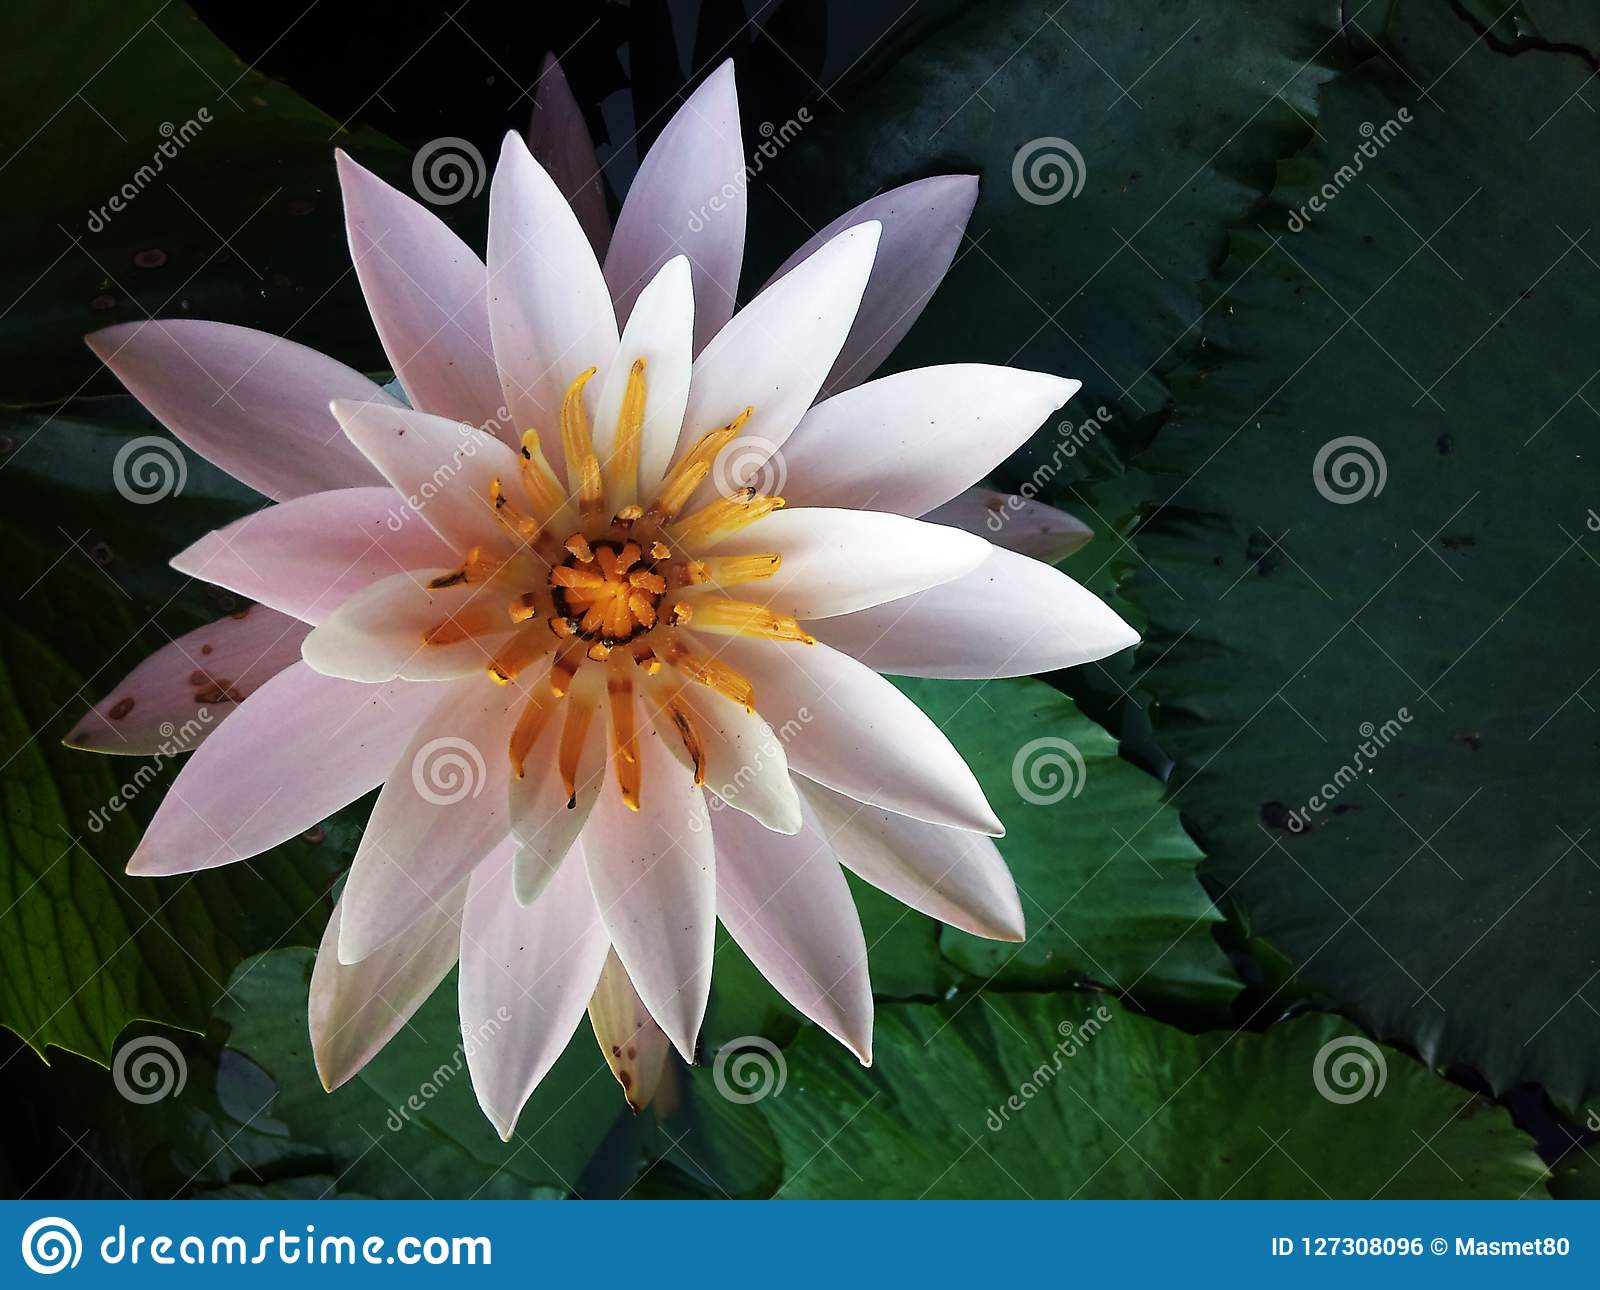 The White Lotus Stock Photo Image Of Collection City 127308096